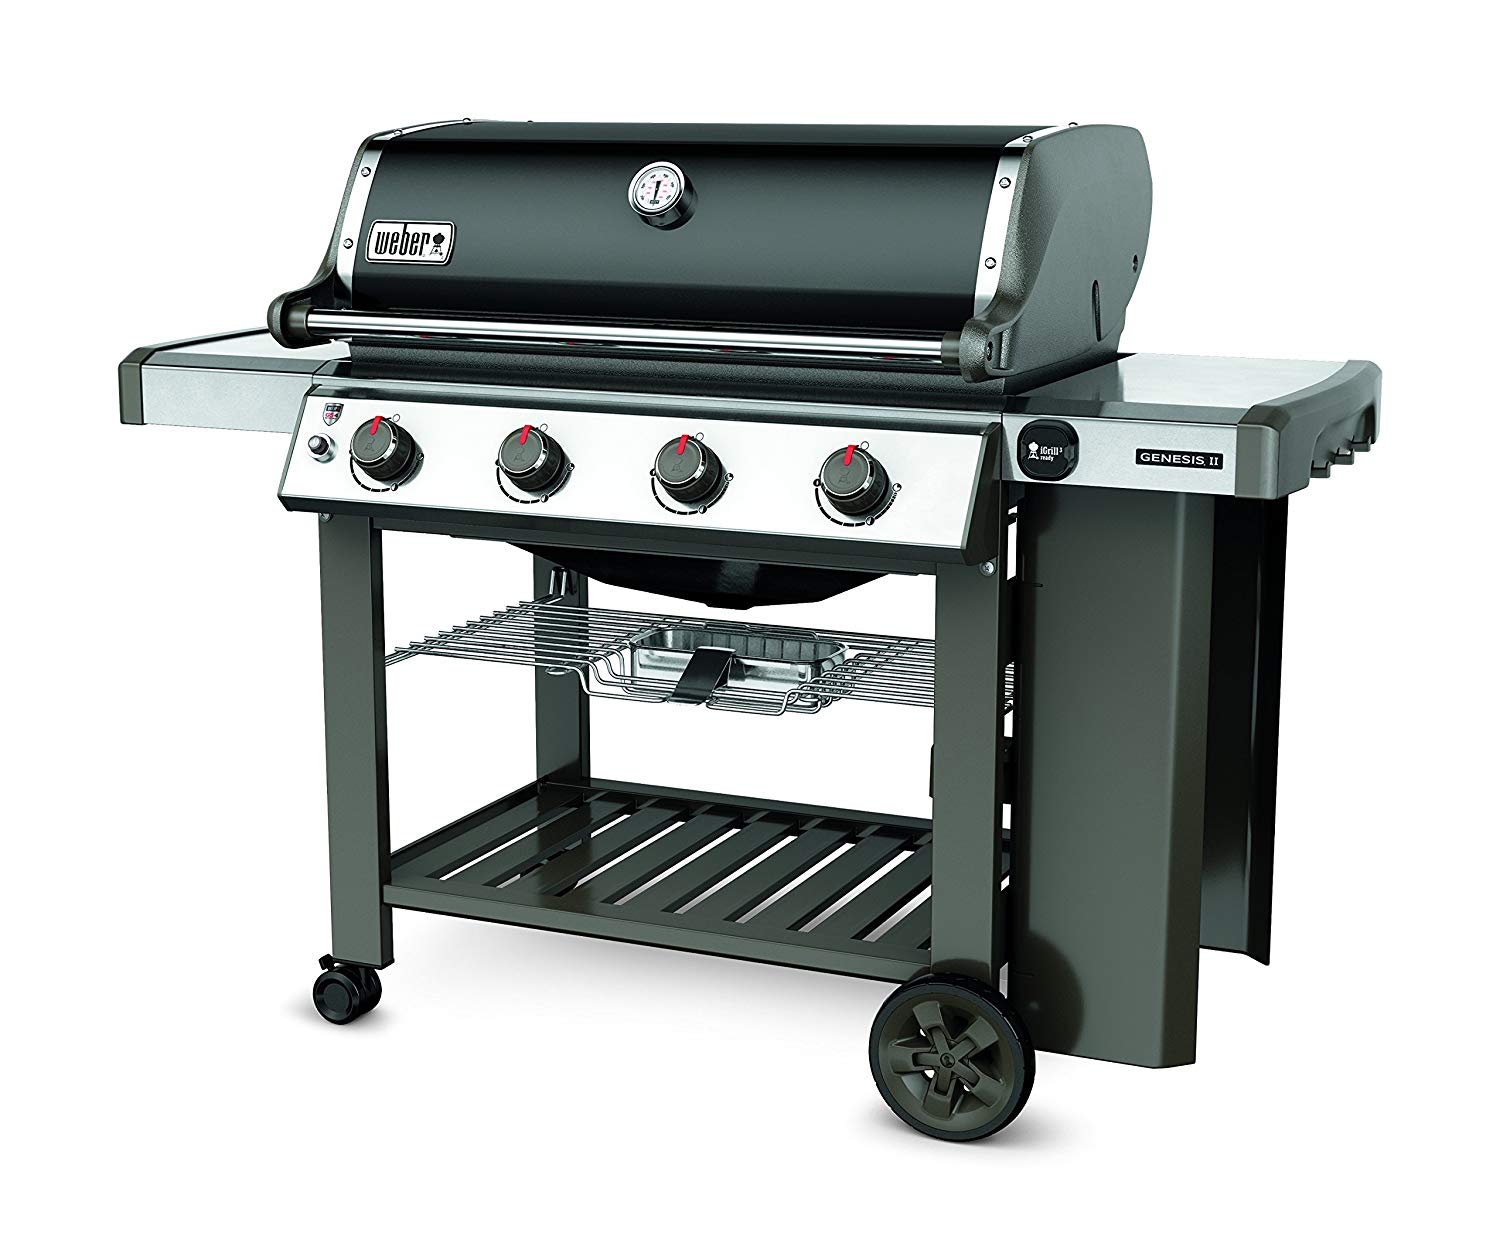 Weber-Stephen Products 62010001 Genesis Ii E410 Lp Grill